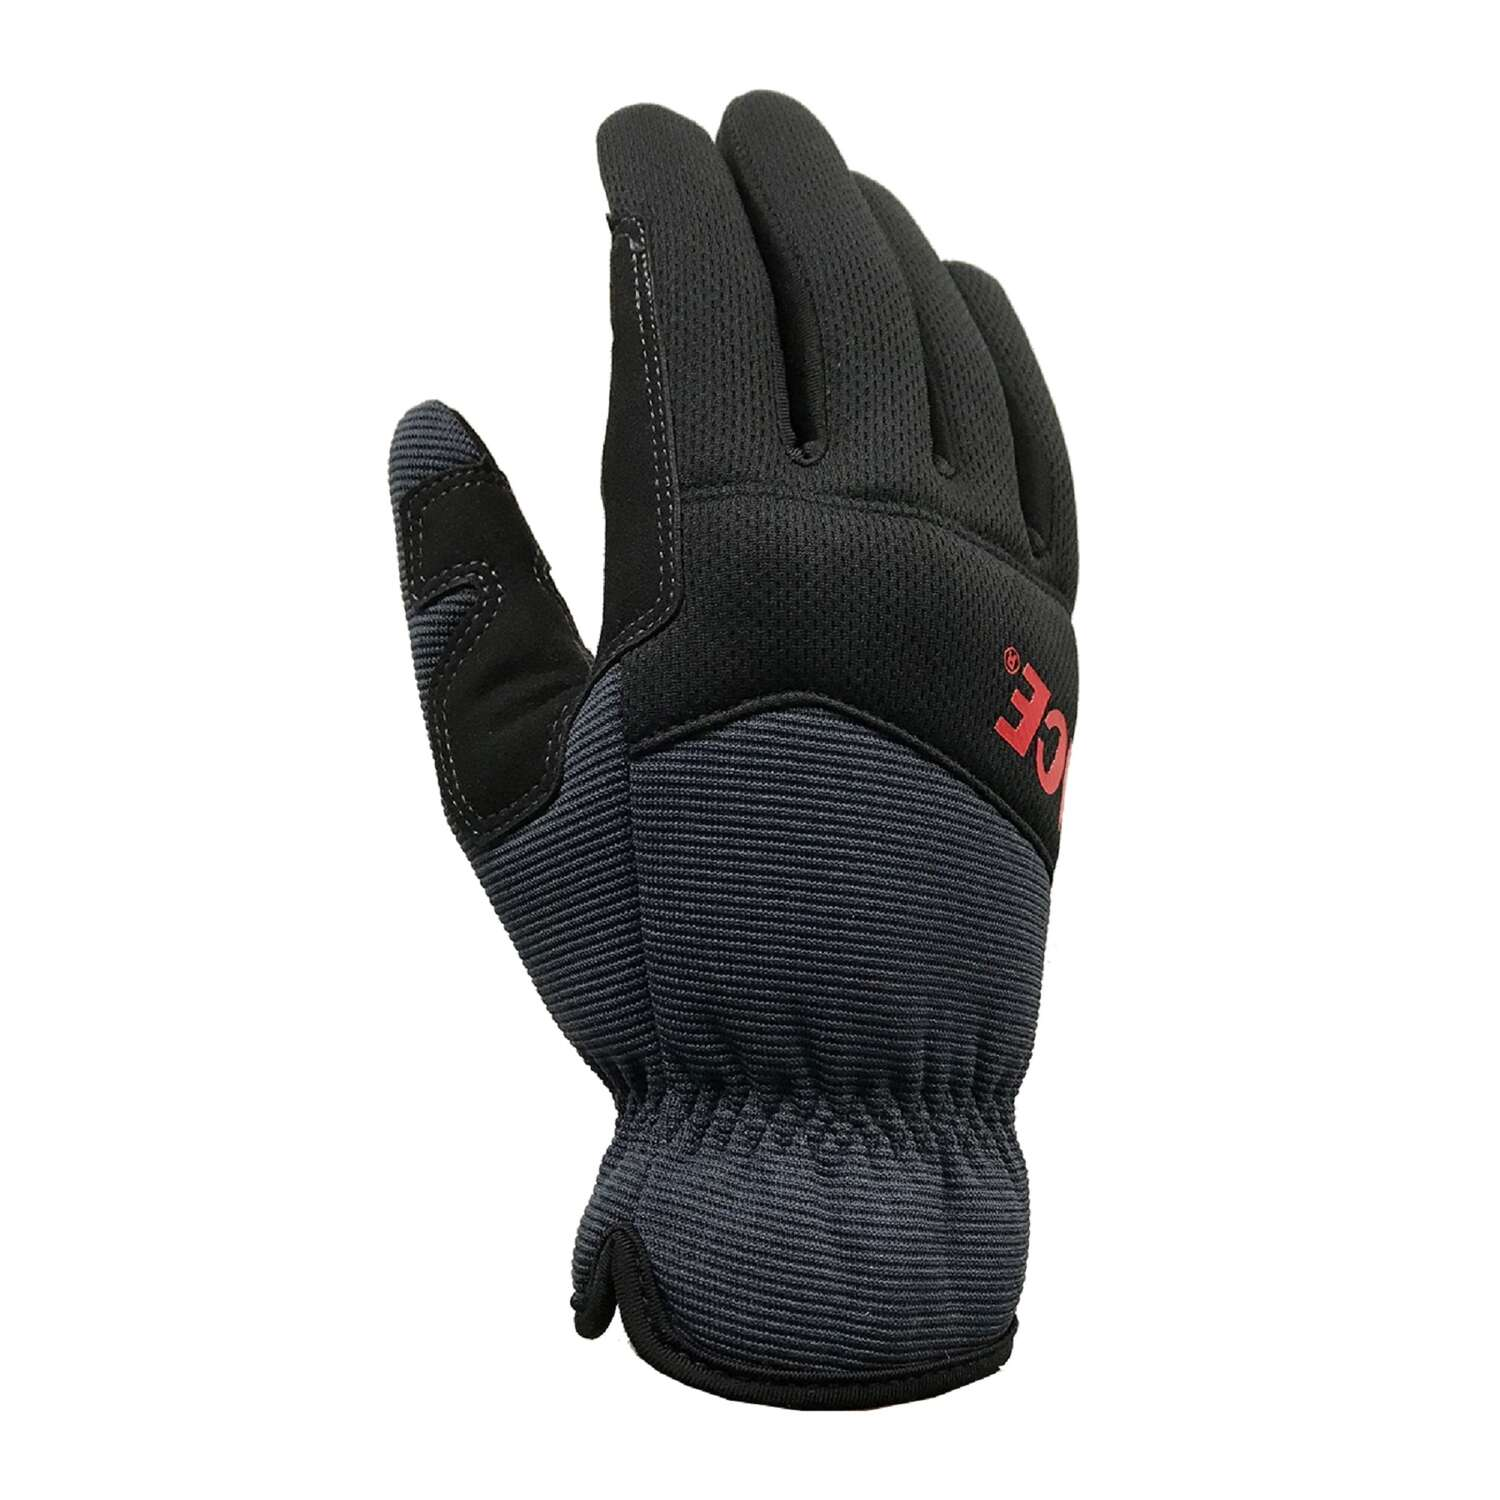 Ace  S  High Performance Utility  Gloves